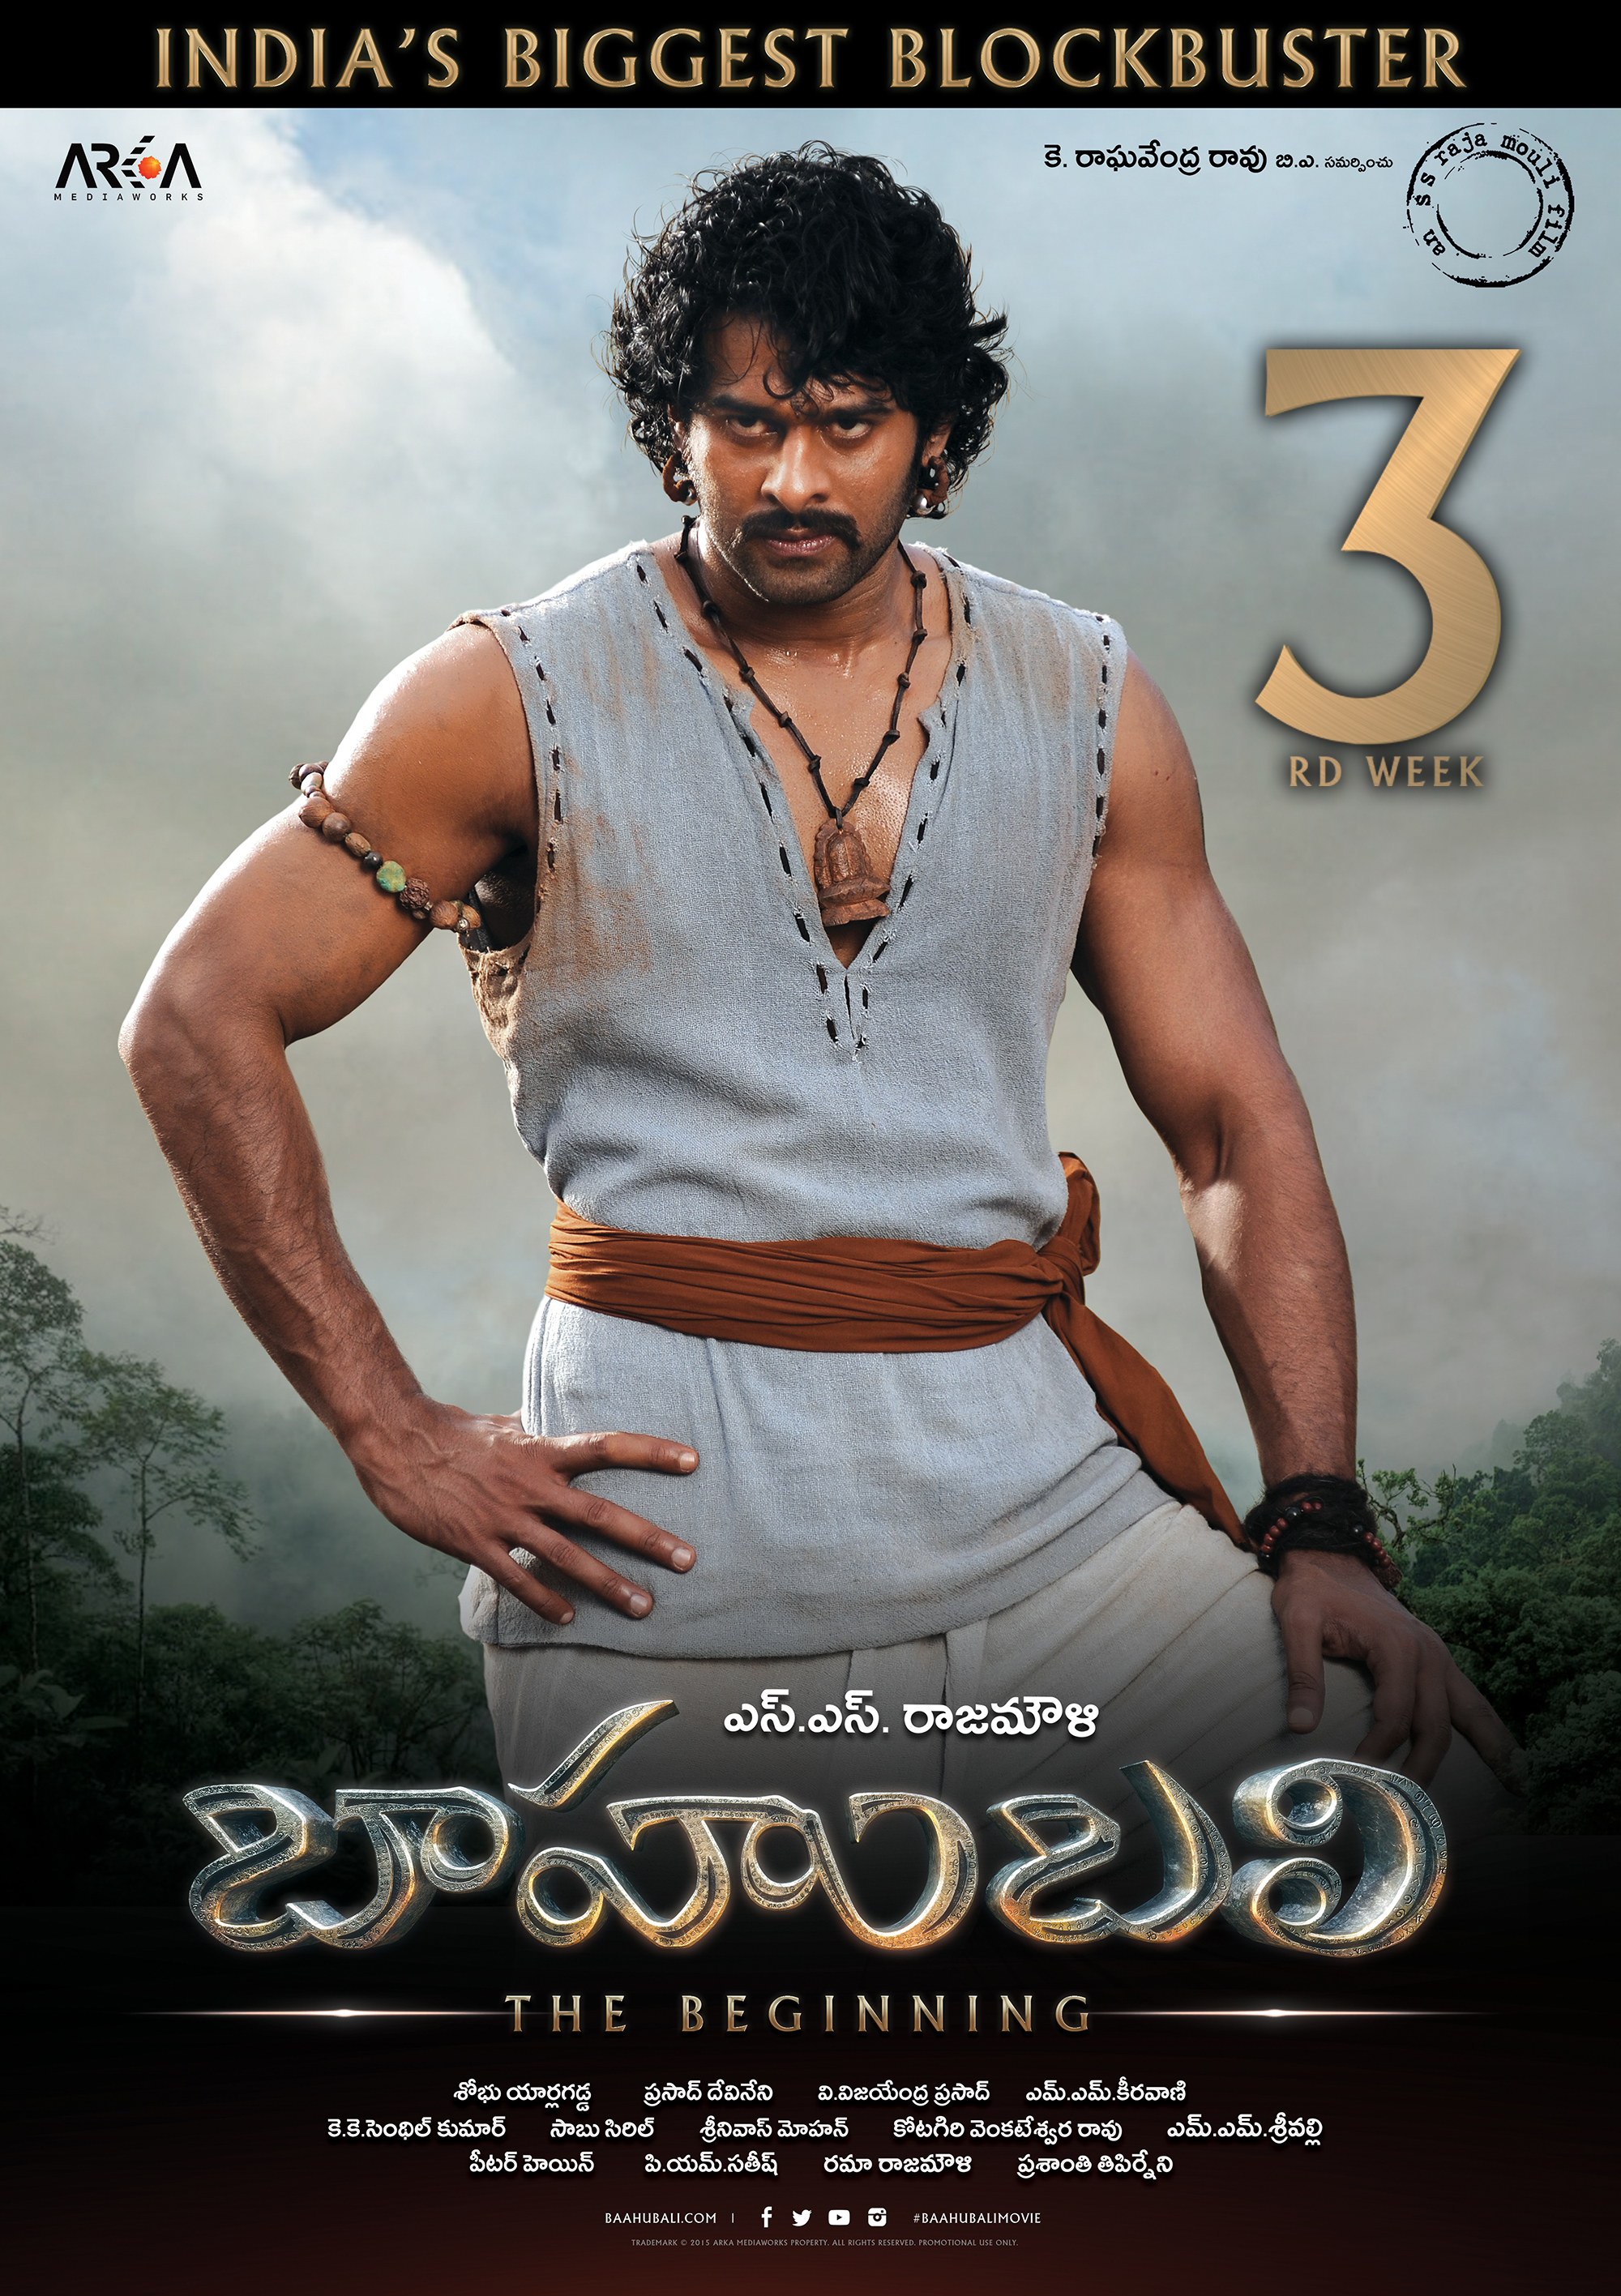 The Epic Baahubali 3 Film On The Way: SSR Confirms Third Part, But With Different Story